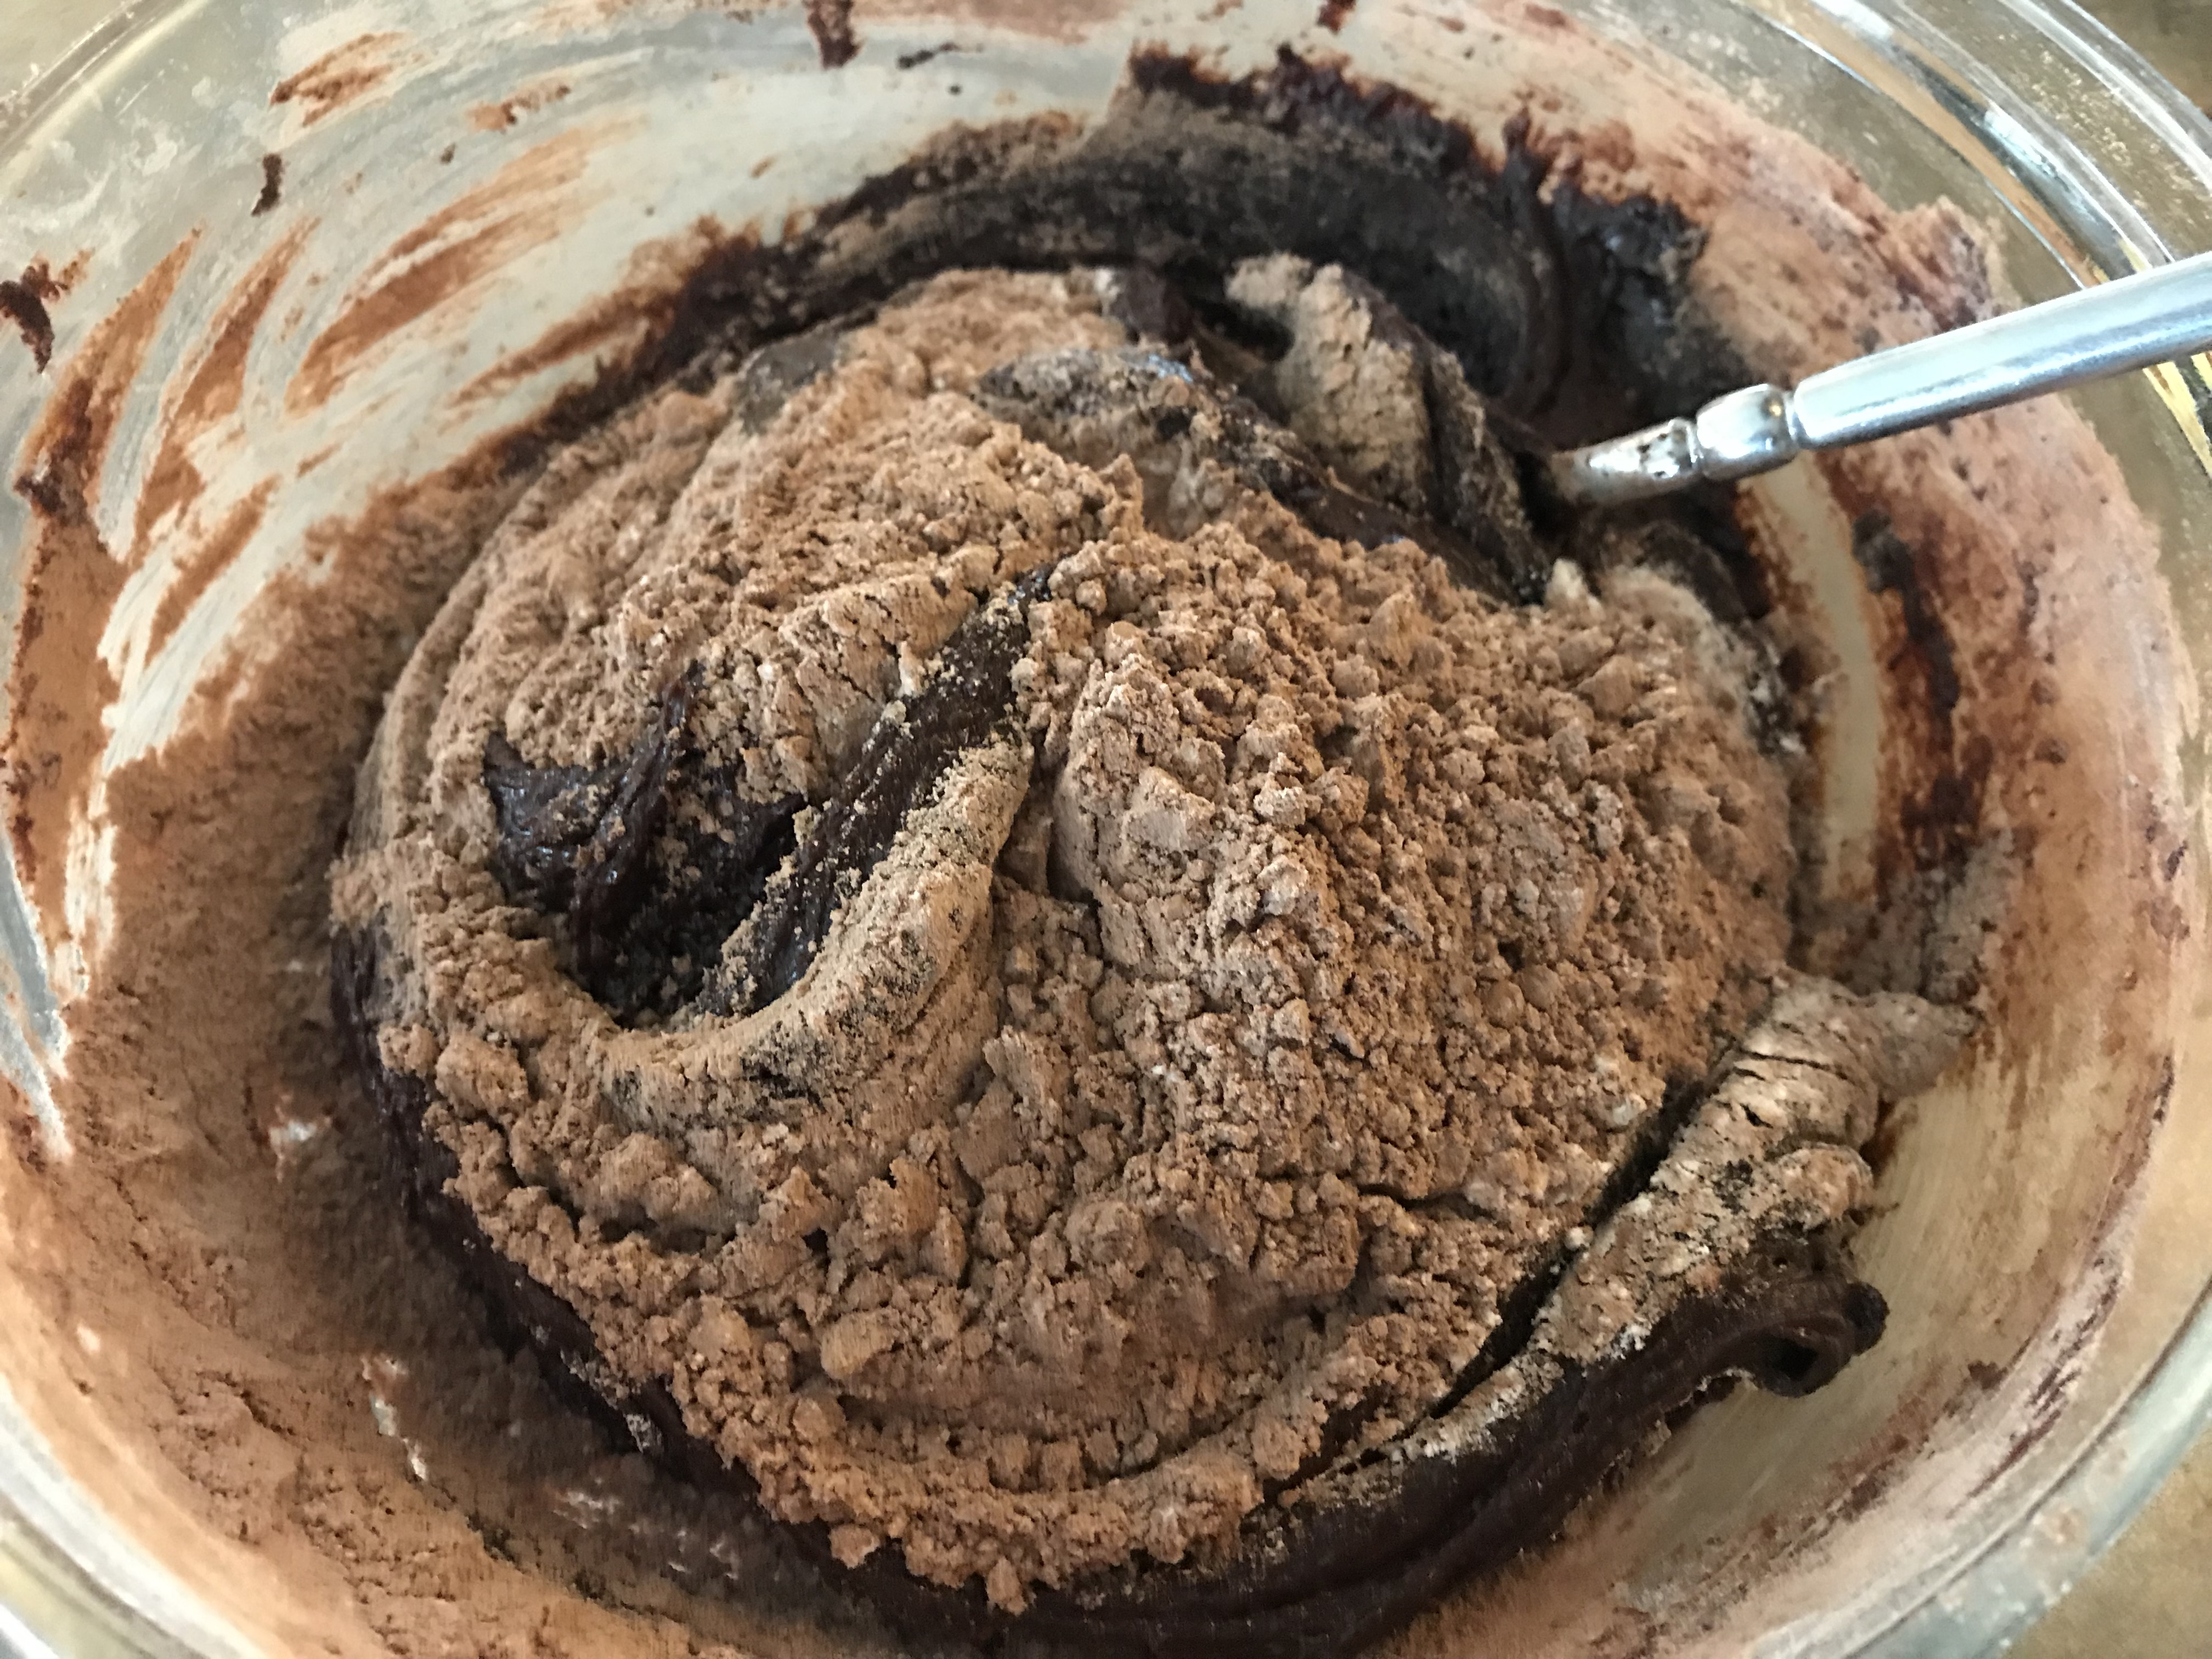 Stir dry ingredients into chocolate mixture for Seriously Chocolate Cookies